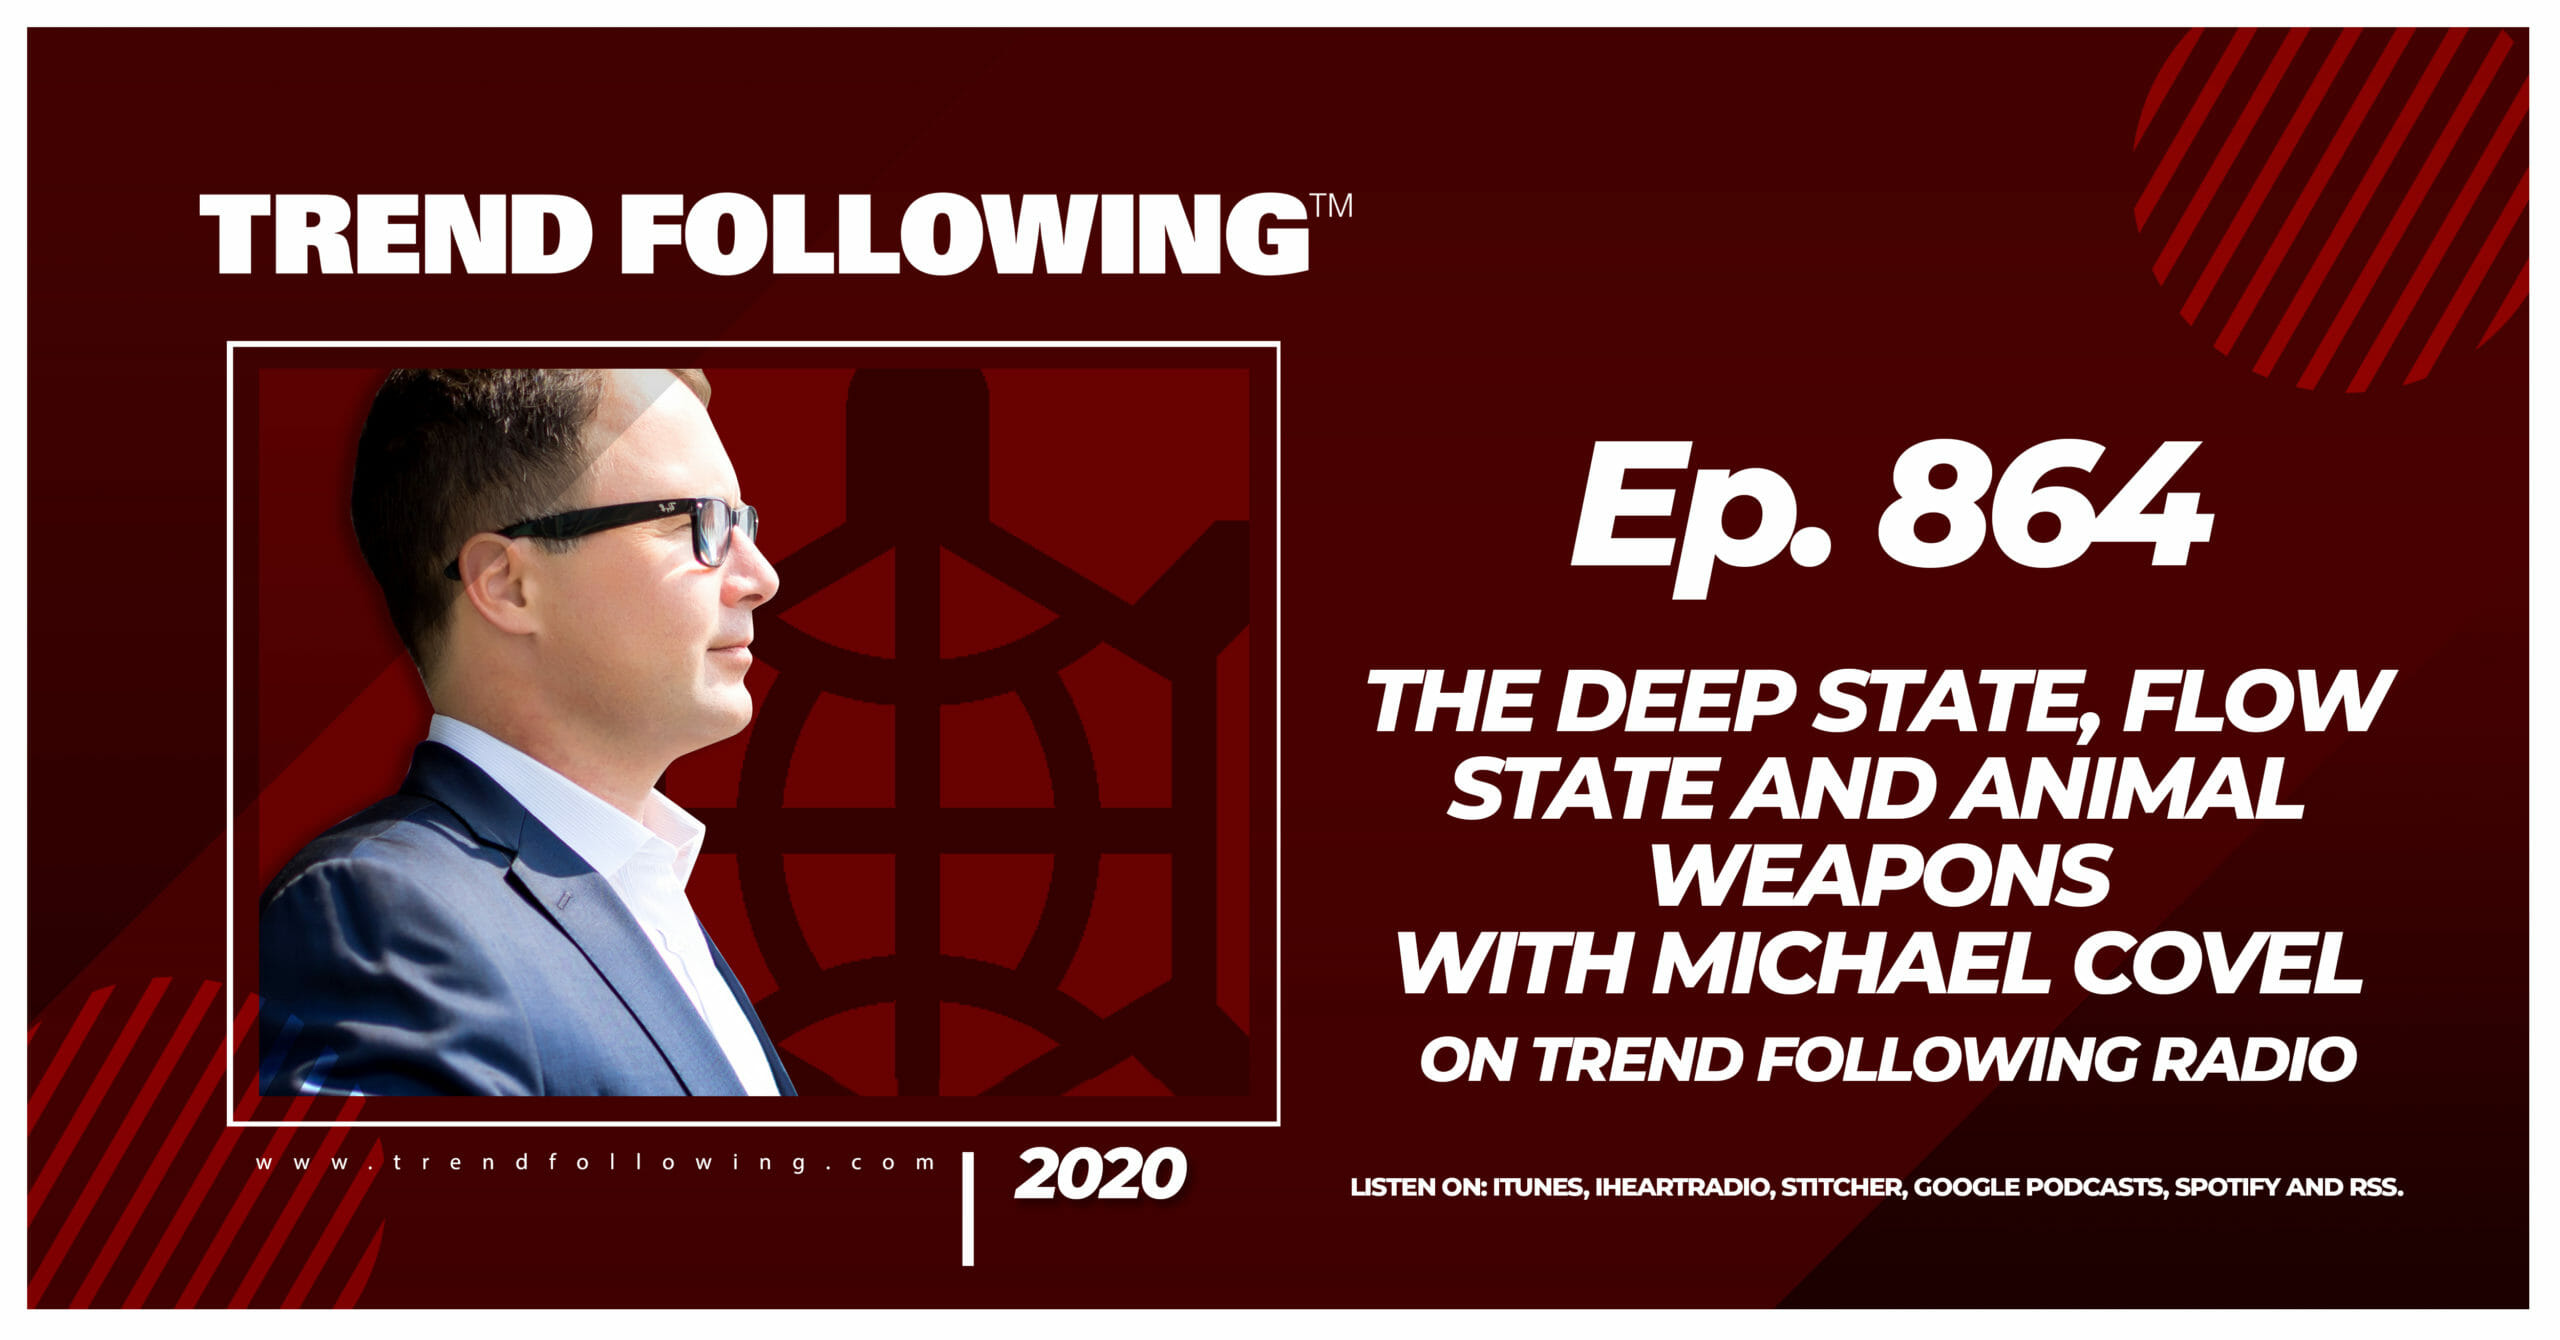 The Deep State, Flow State and Animal Weapons with Michael Covel on Trend Following Radio